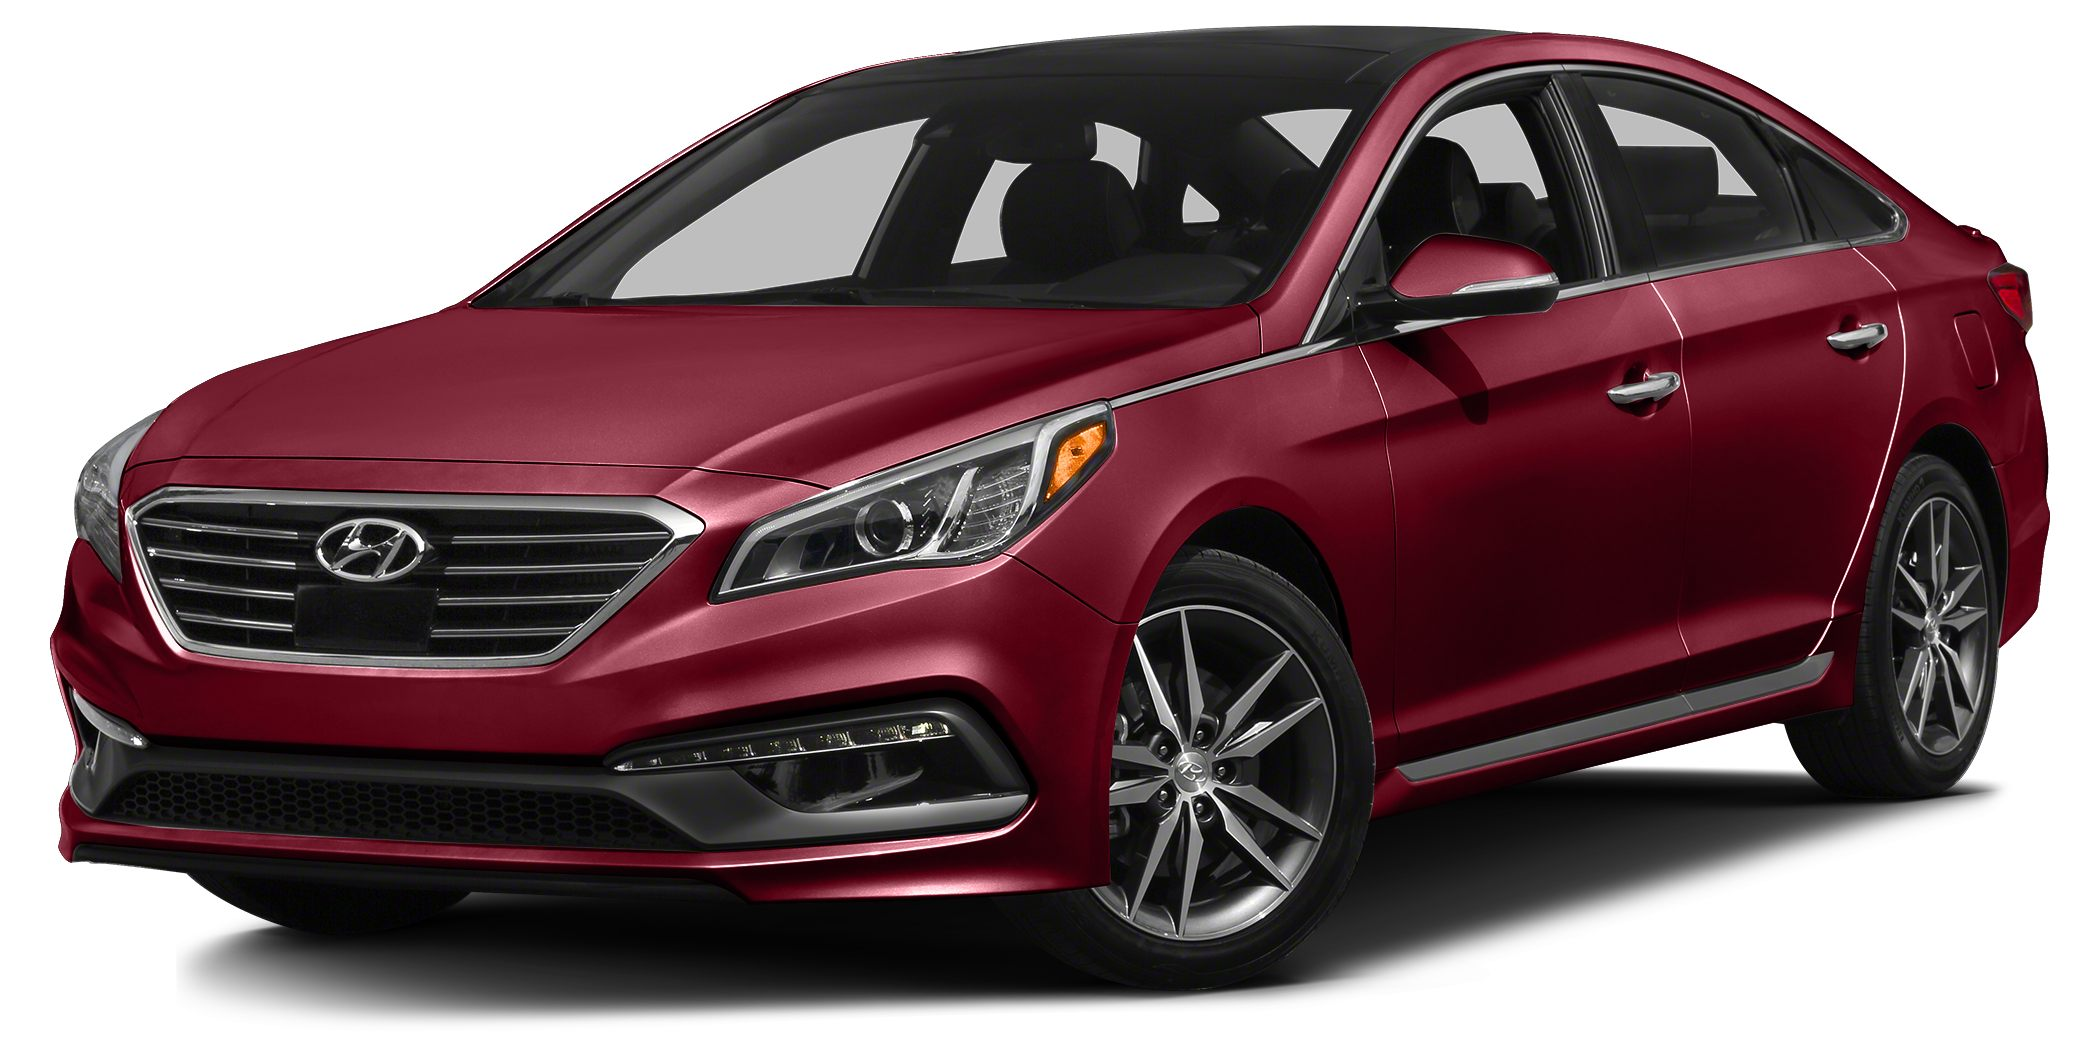 2015 Hyundai Sonata SE Price includes 1500 - Retail Bonus Cash Exp 0430 Miles 10Color Sha